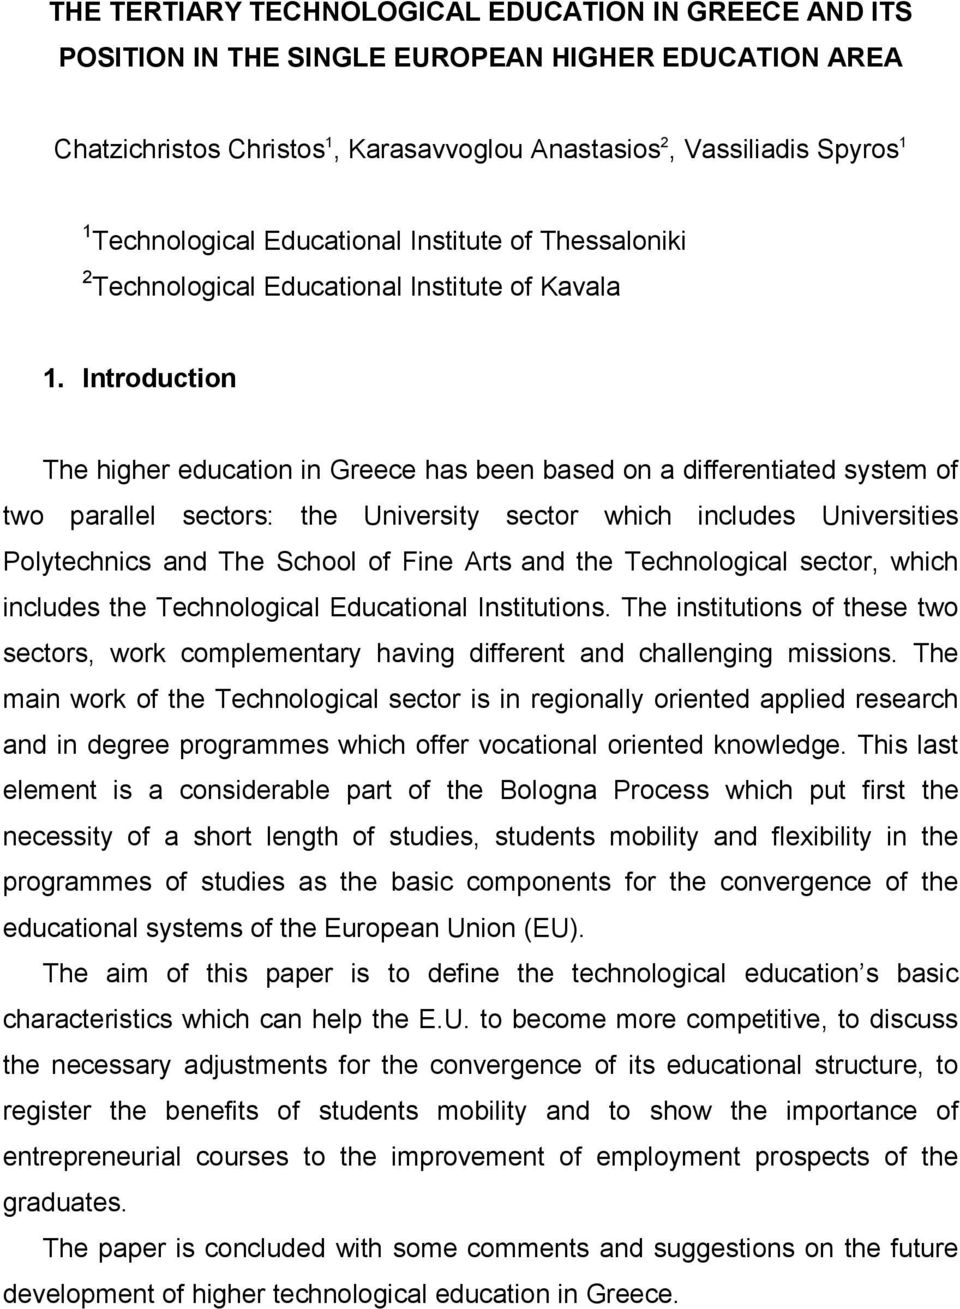 Introduction The higher education in Greece has been based on a differentiated system of two parallel sectors: the University sector which includes Universities Polytechnics and The School of Fine